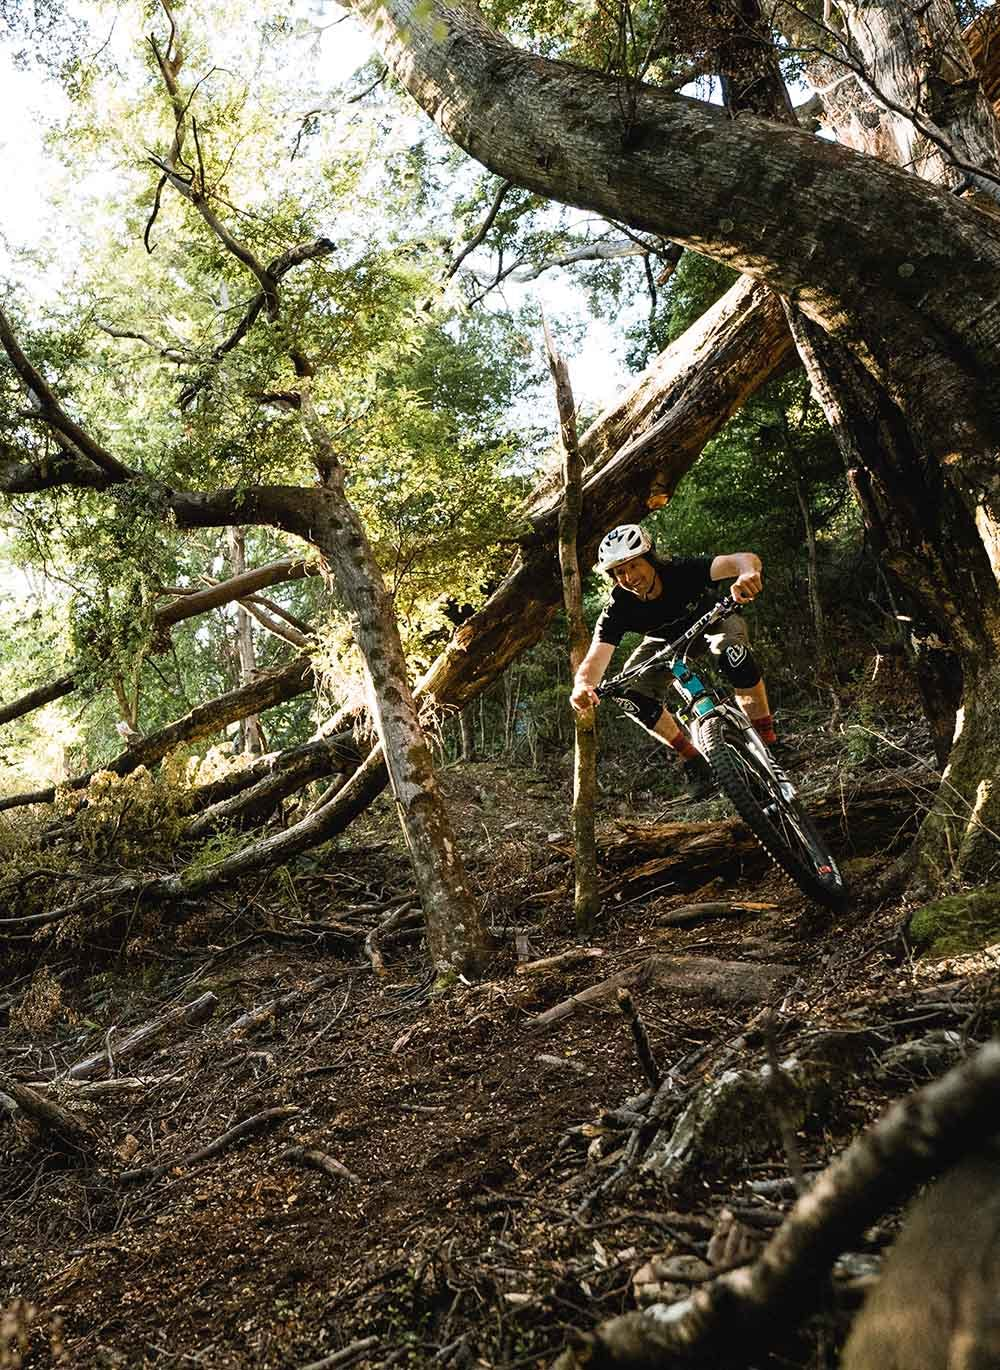 Tom Hey riding his mountain bike on forest trails